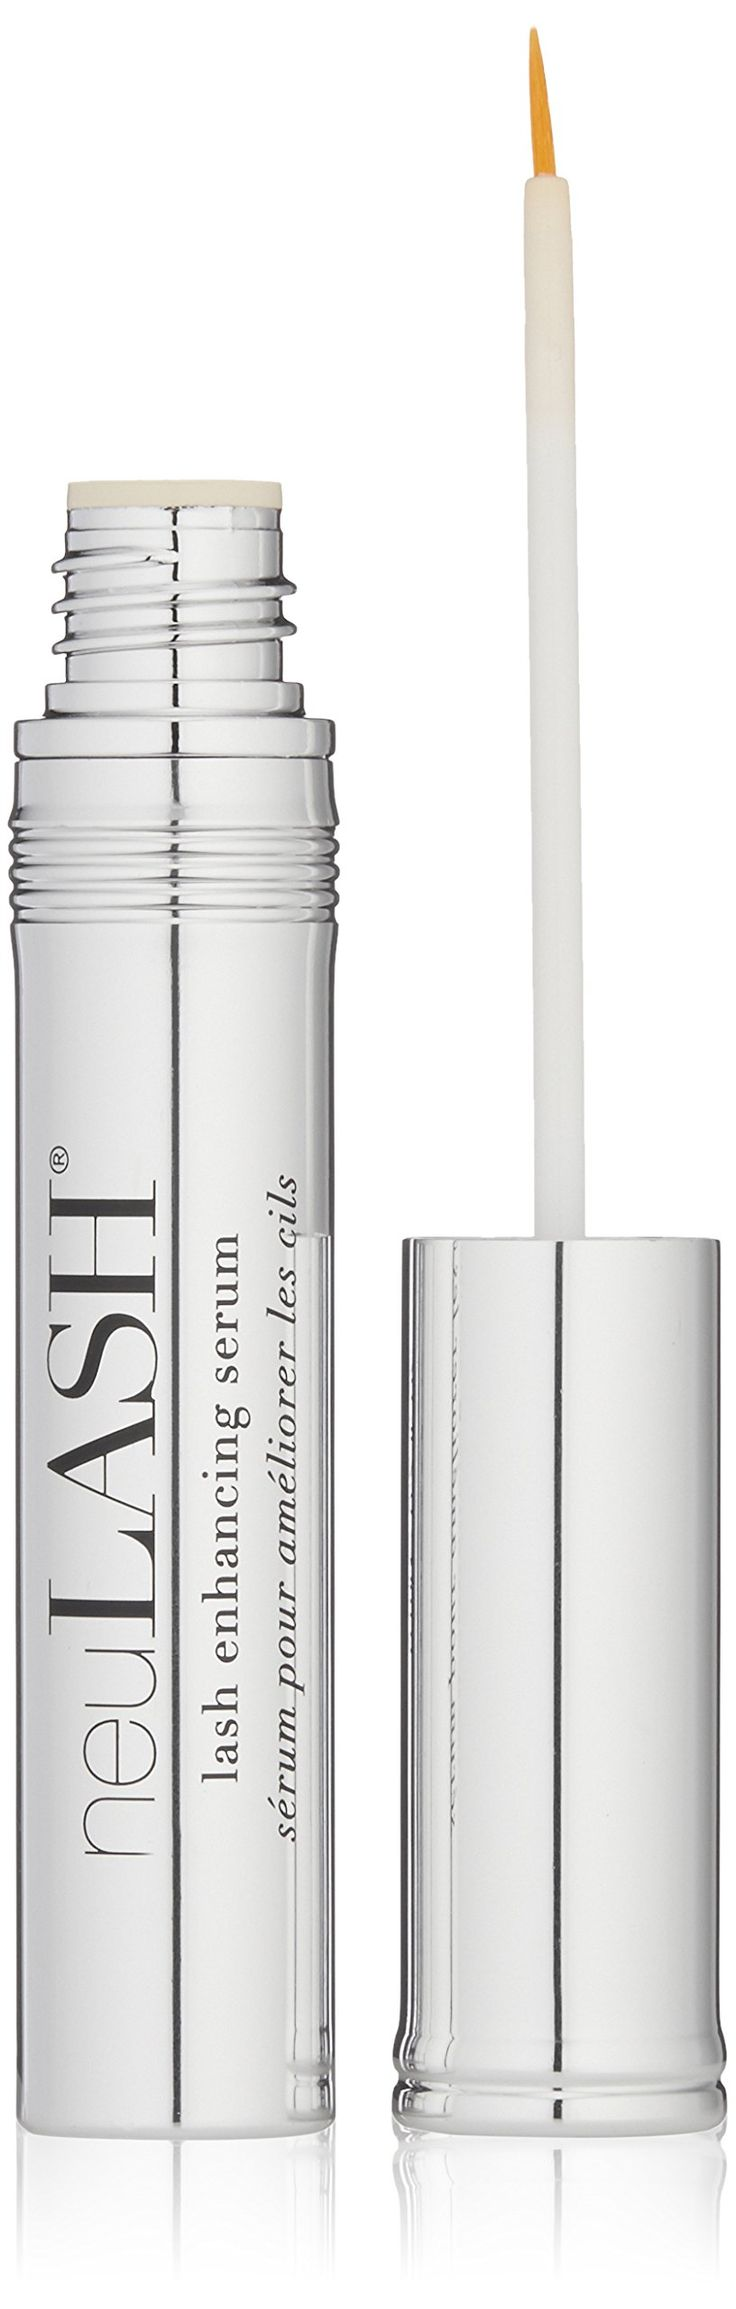 Neulash Lash Enhancer Serum. Lash enhancing serum. Protects and hydrates lashes while promoting fuller, healthier looking lashes. Contains vitamins, plant extracts and peptides.